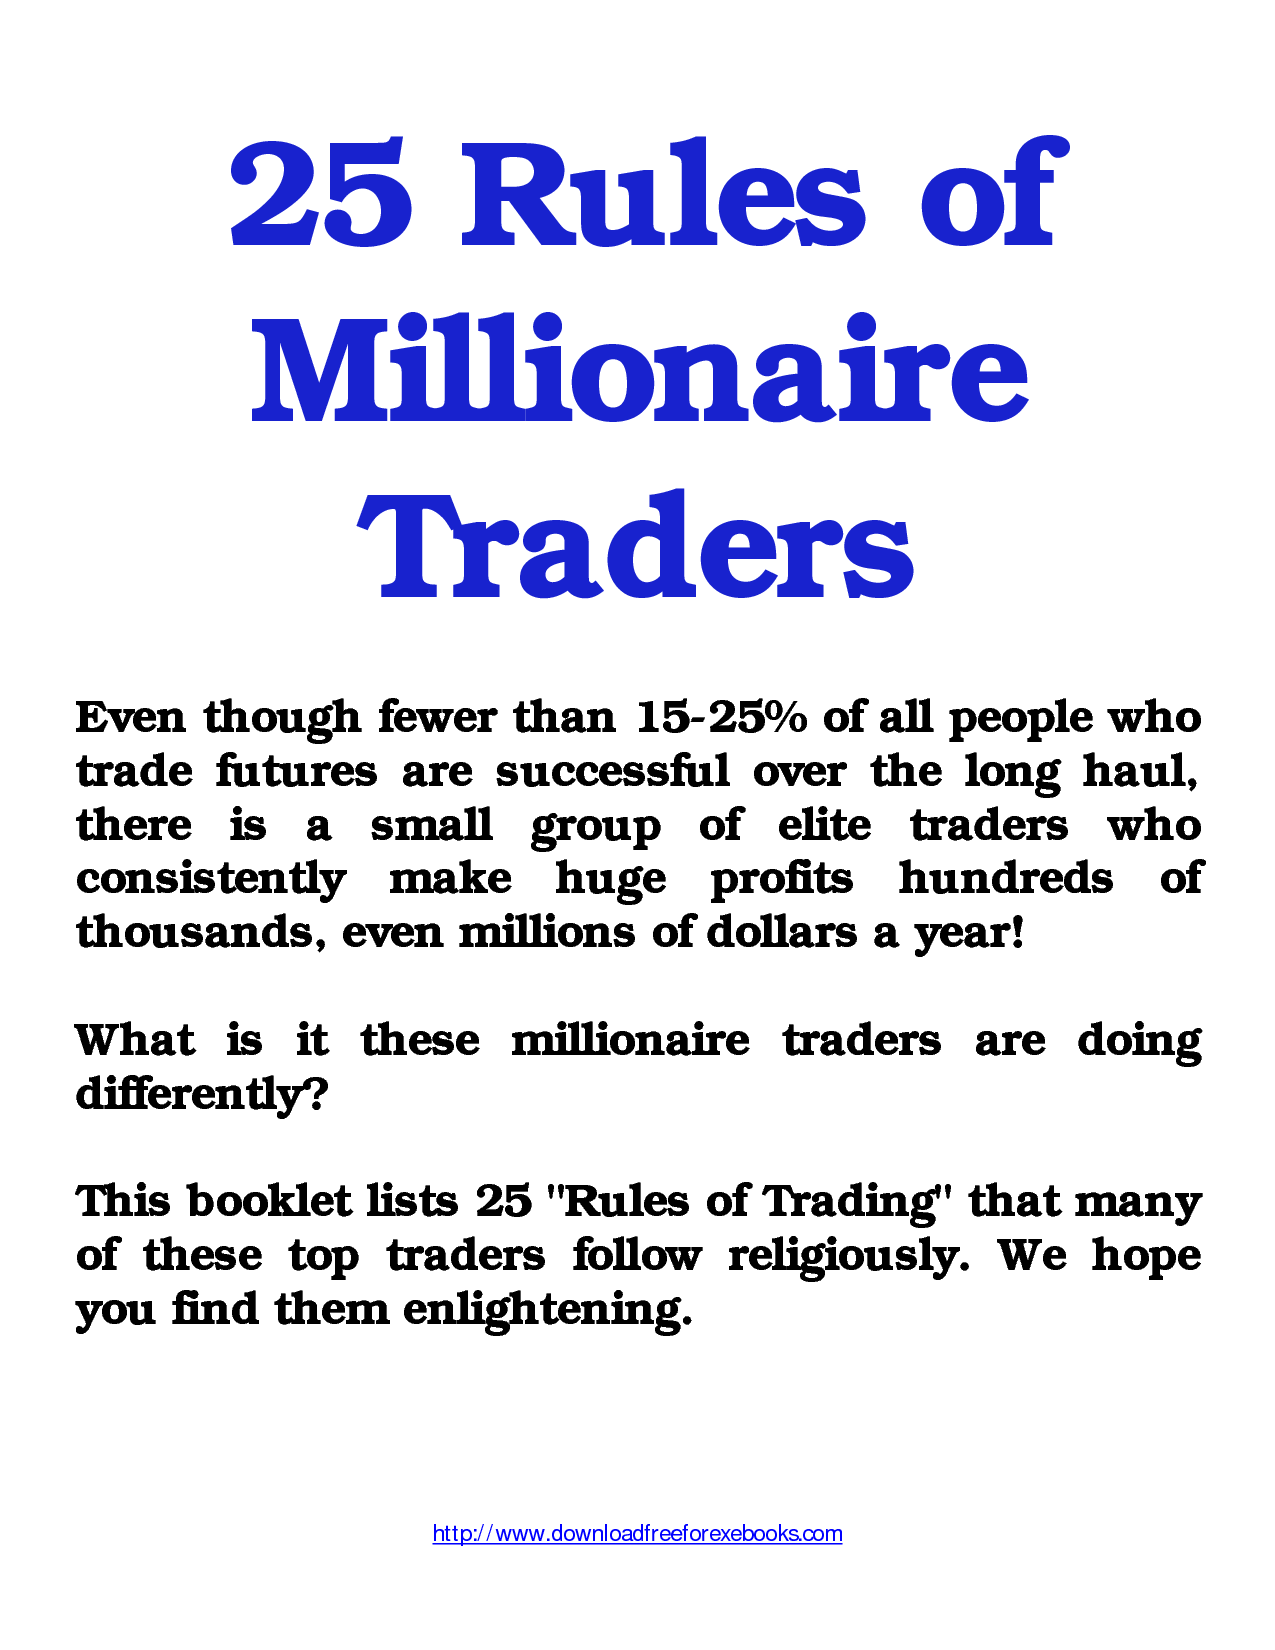 25Rules of Millionaire Traders